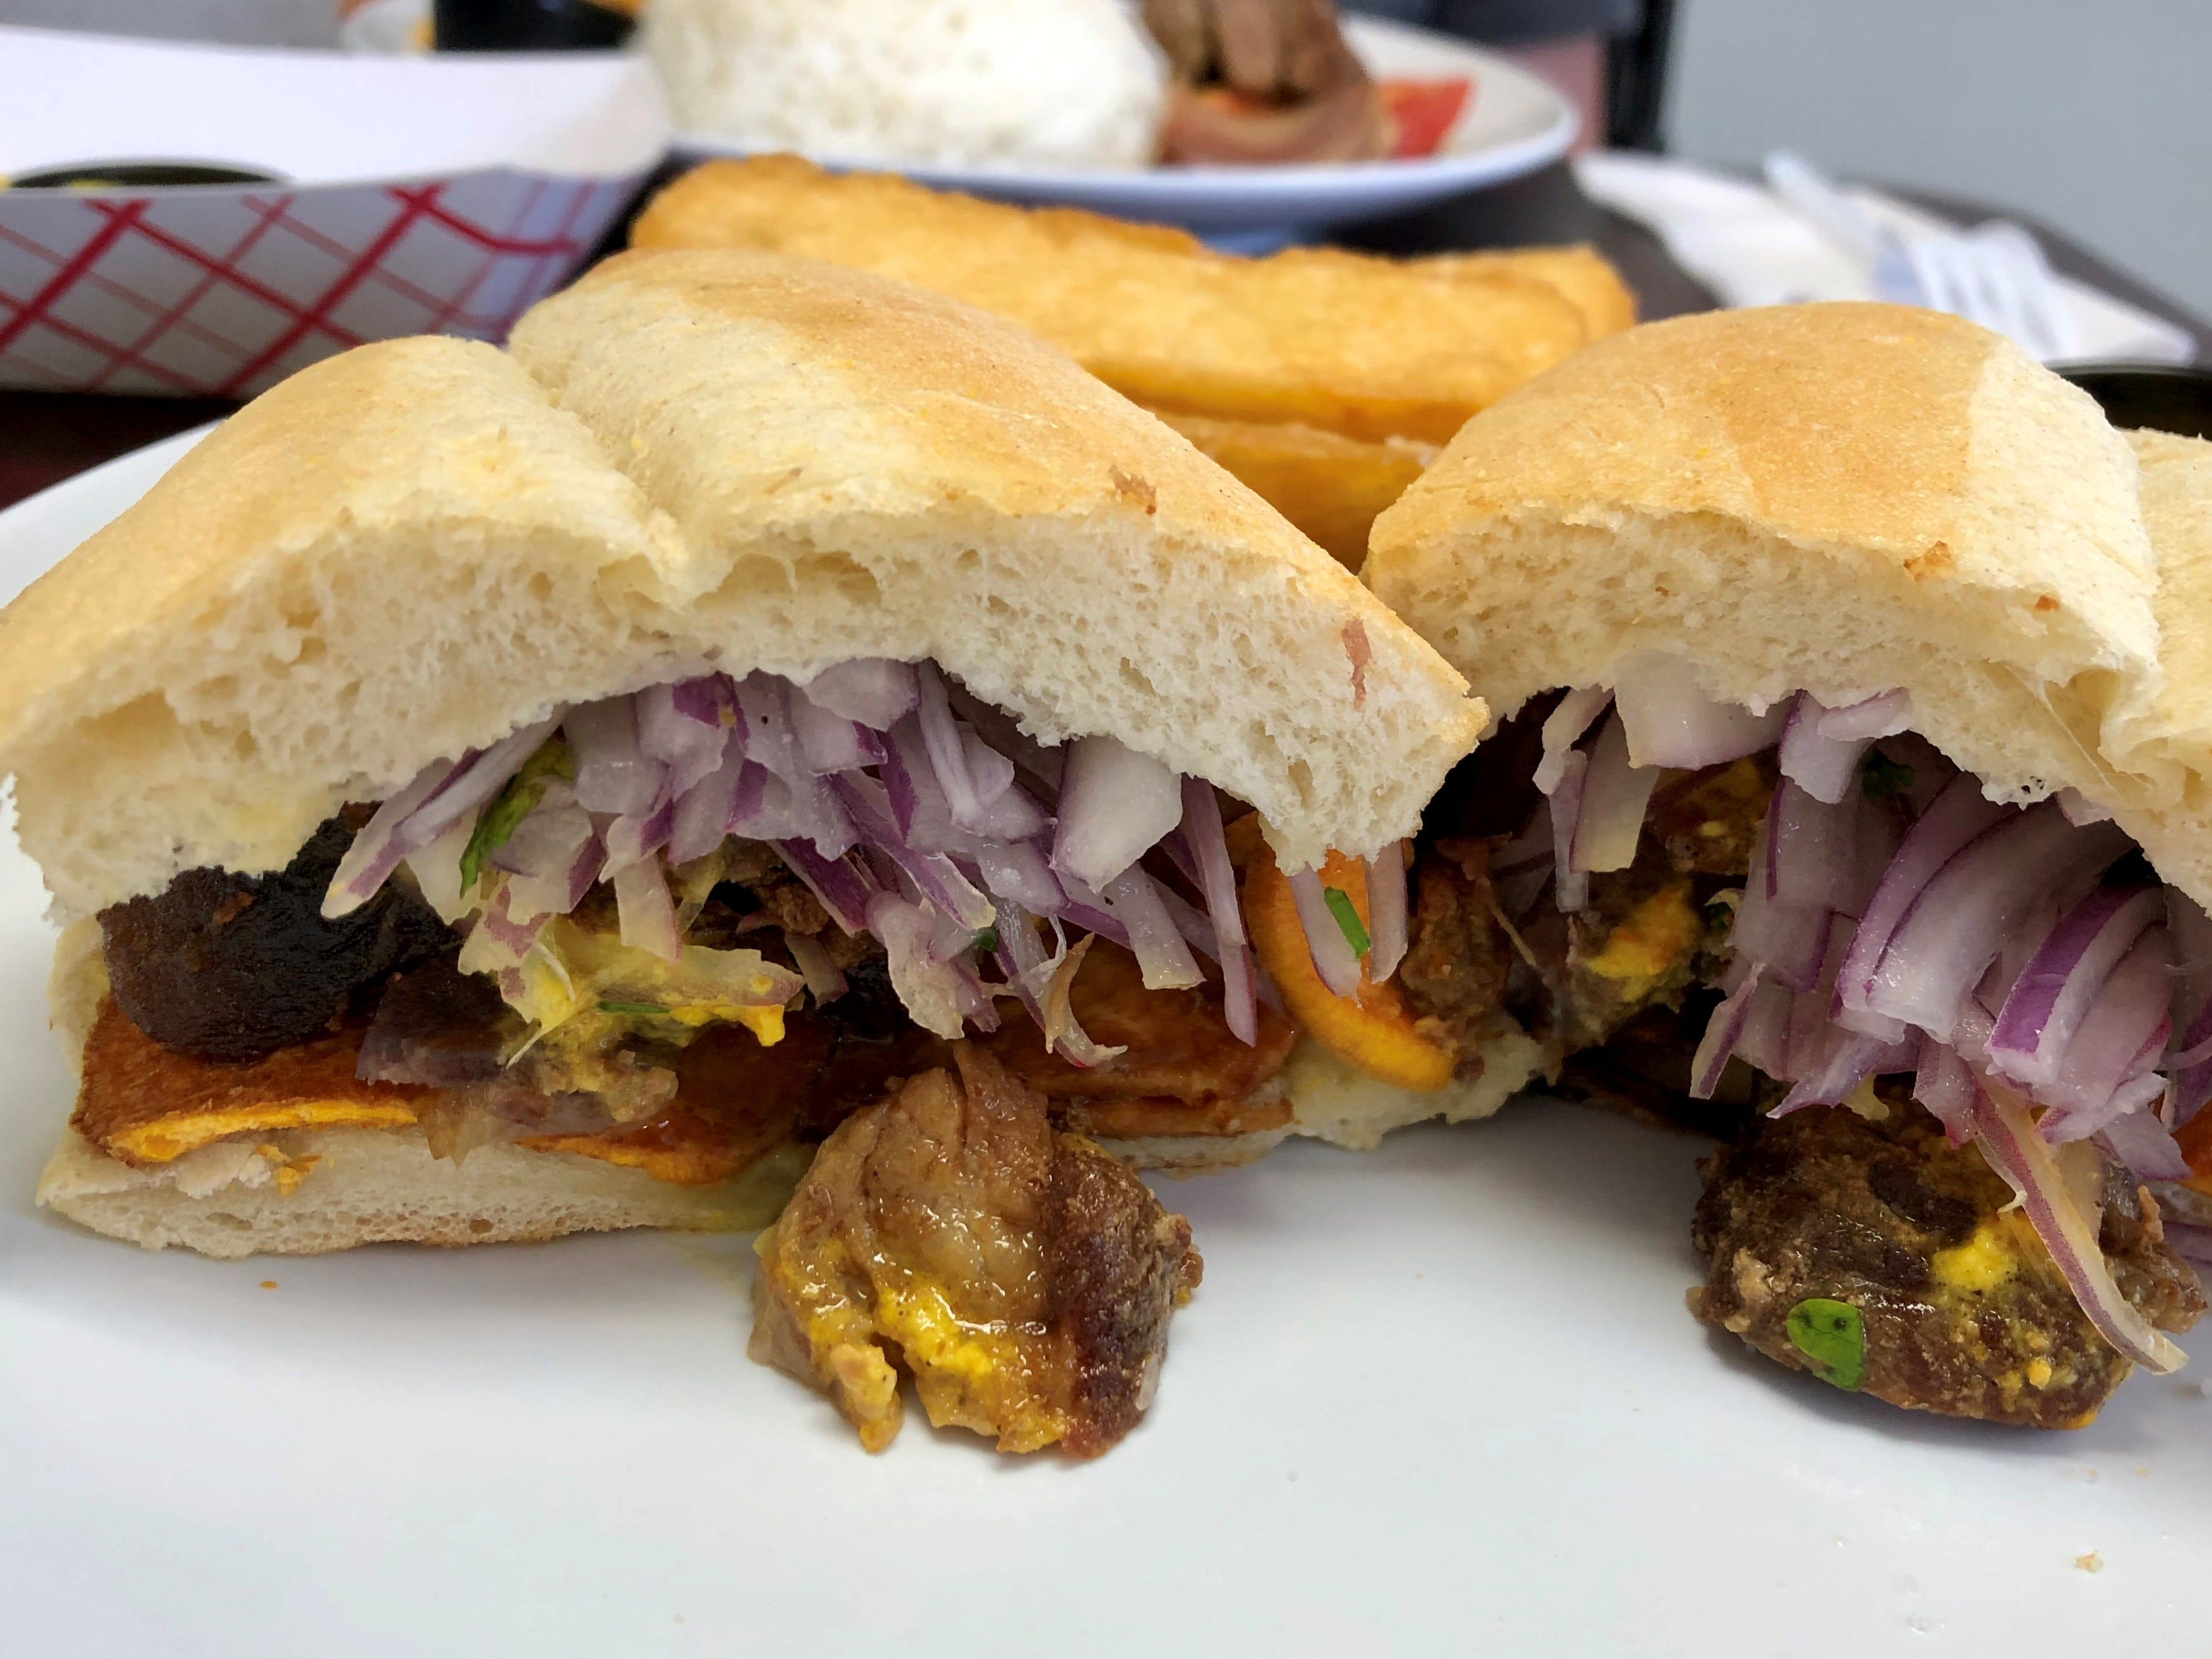 The chicharron sandwich from Renzo's comes with fried pork hunks, thin slices of sweet potato, cilantro and pickles onions. It is a thing of delicious beauty.